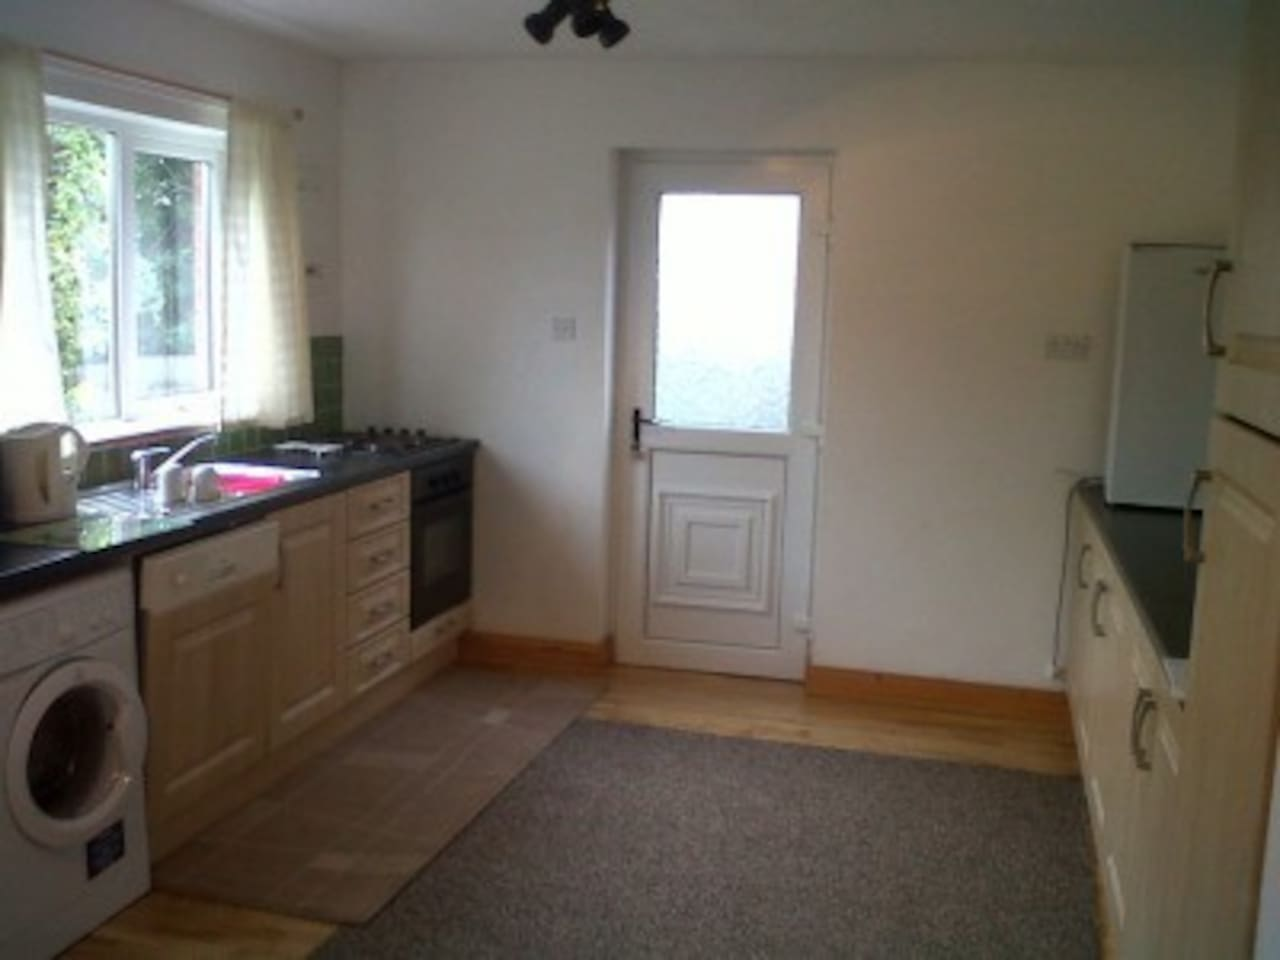 Spacious kitchen with fridge, freezer, microwave, kettle and microwave